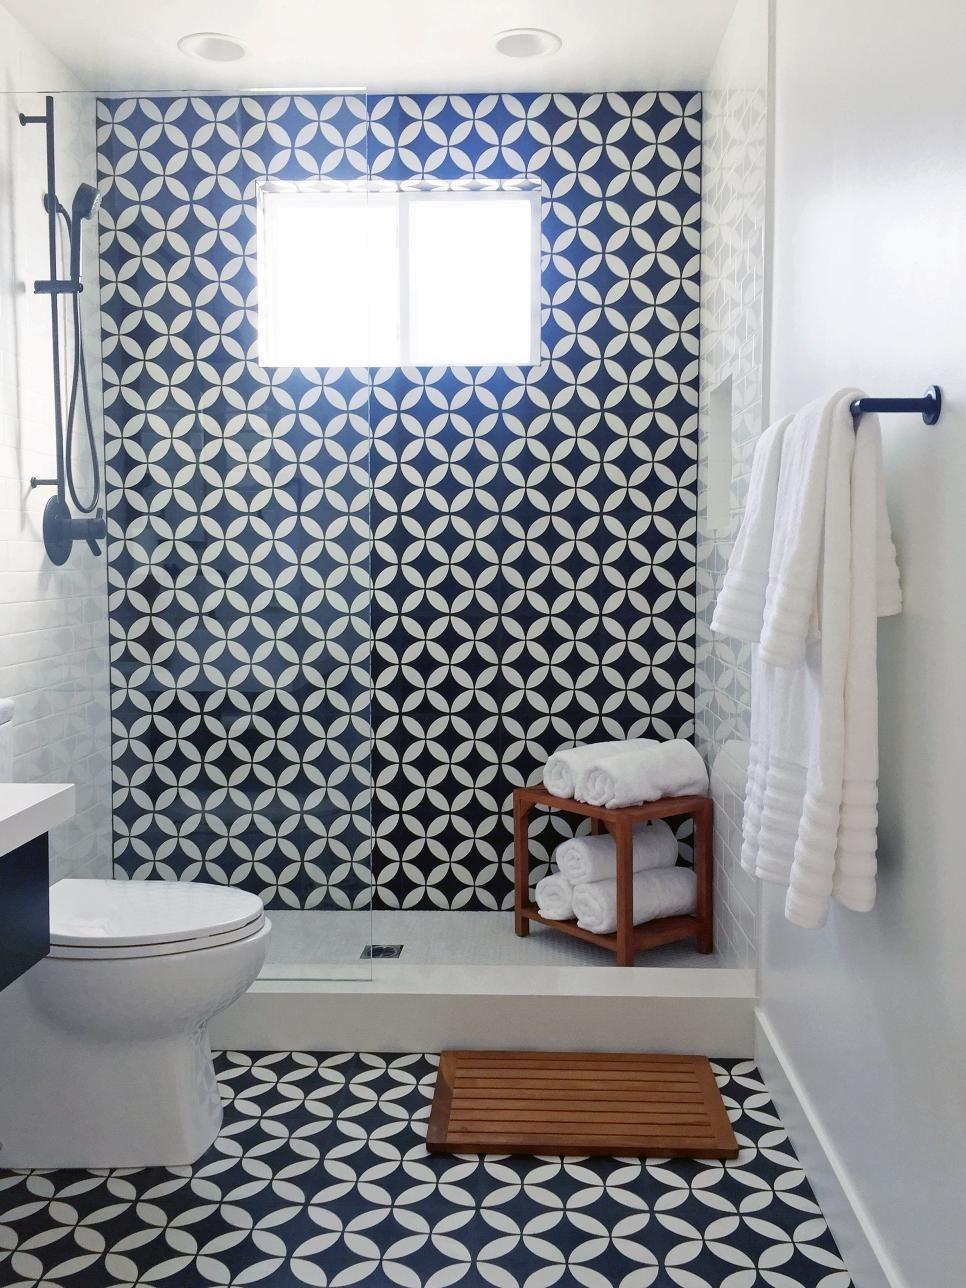 this small bathroom was remodeled with black-and-white patterned